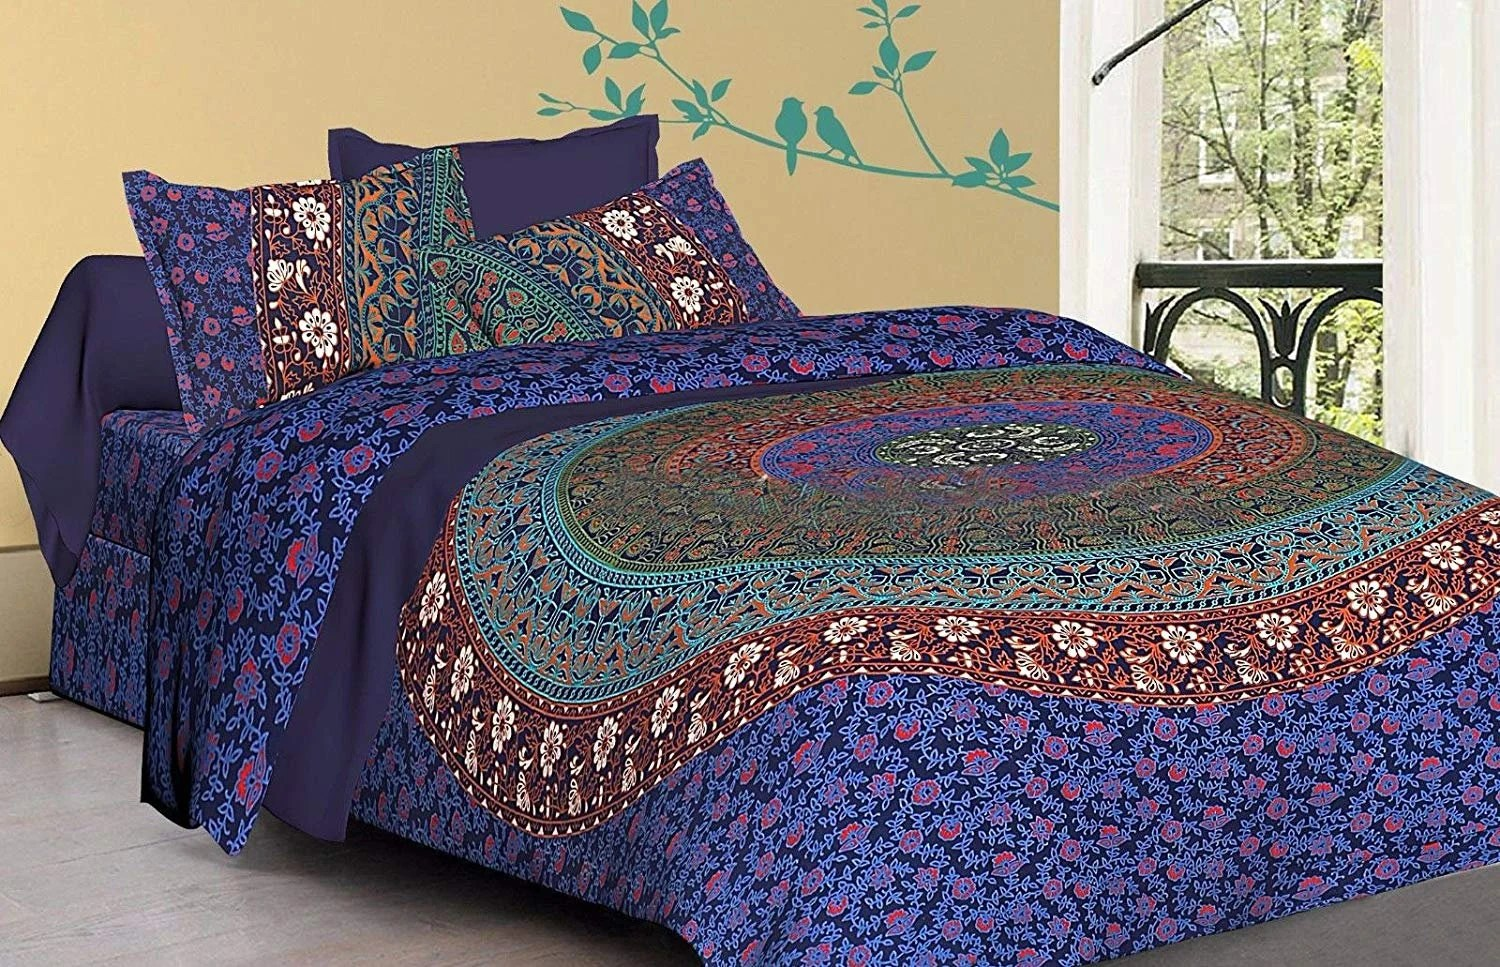 Boho Quilt Covers Australia Indian Round Flower Mandala Duvet Quilt Cover Boho Doona Comforter Quilt Cover Handmade Reversible Bedding Blanket Bed Cover Set